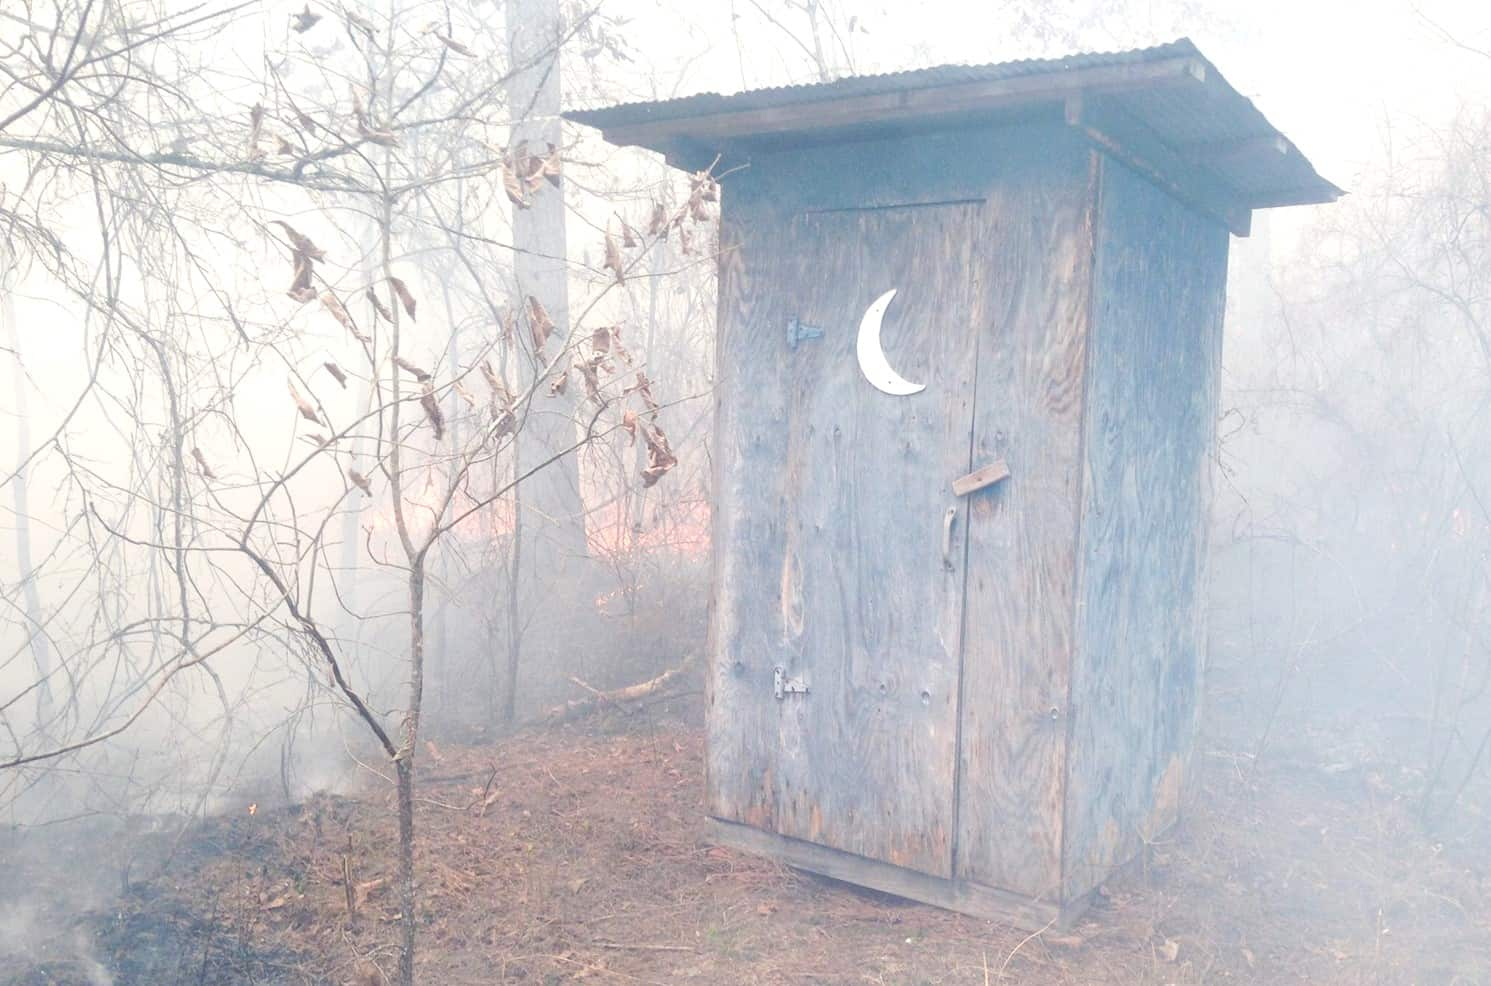 Prescribed fire behind an outhouse on private property